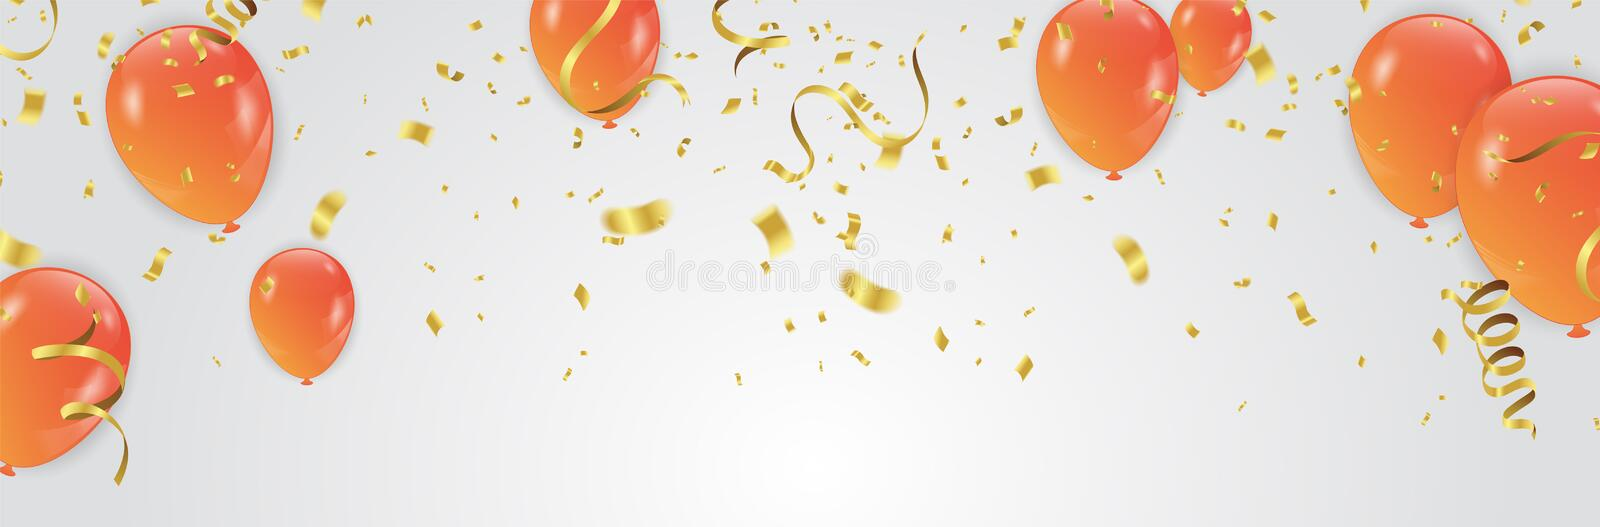 Vector Illustration of Orange Balloons celebration background te royalty free illustration